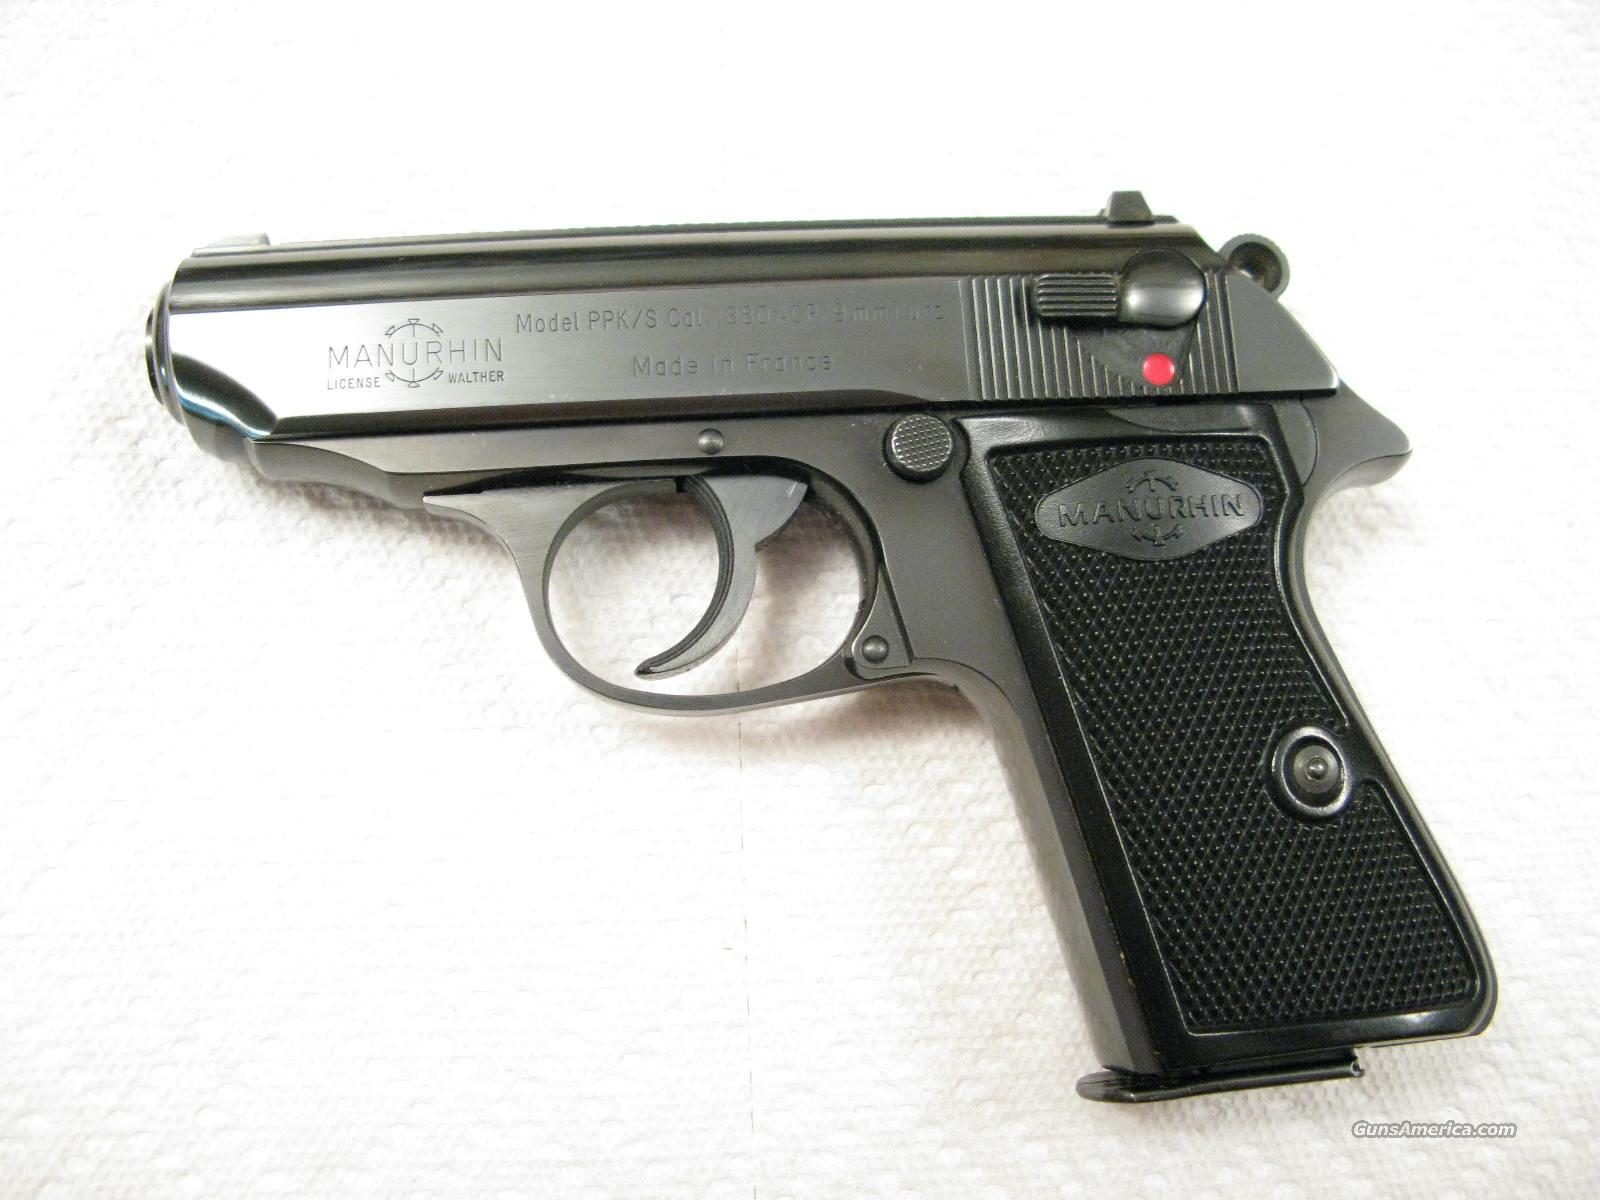 Walther PPK/S .380 ACP  Mint Condition Made in France  Guns > Pistols > Walther Pistols > Post WWII > PP Series